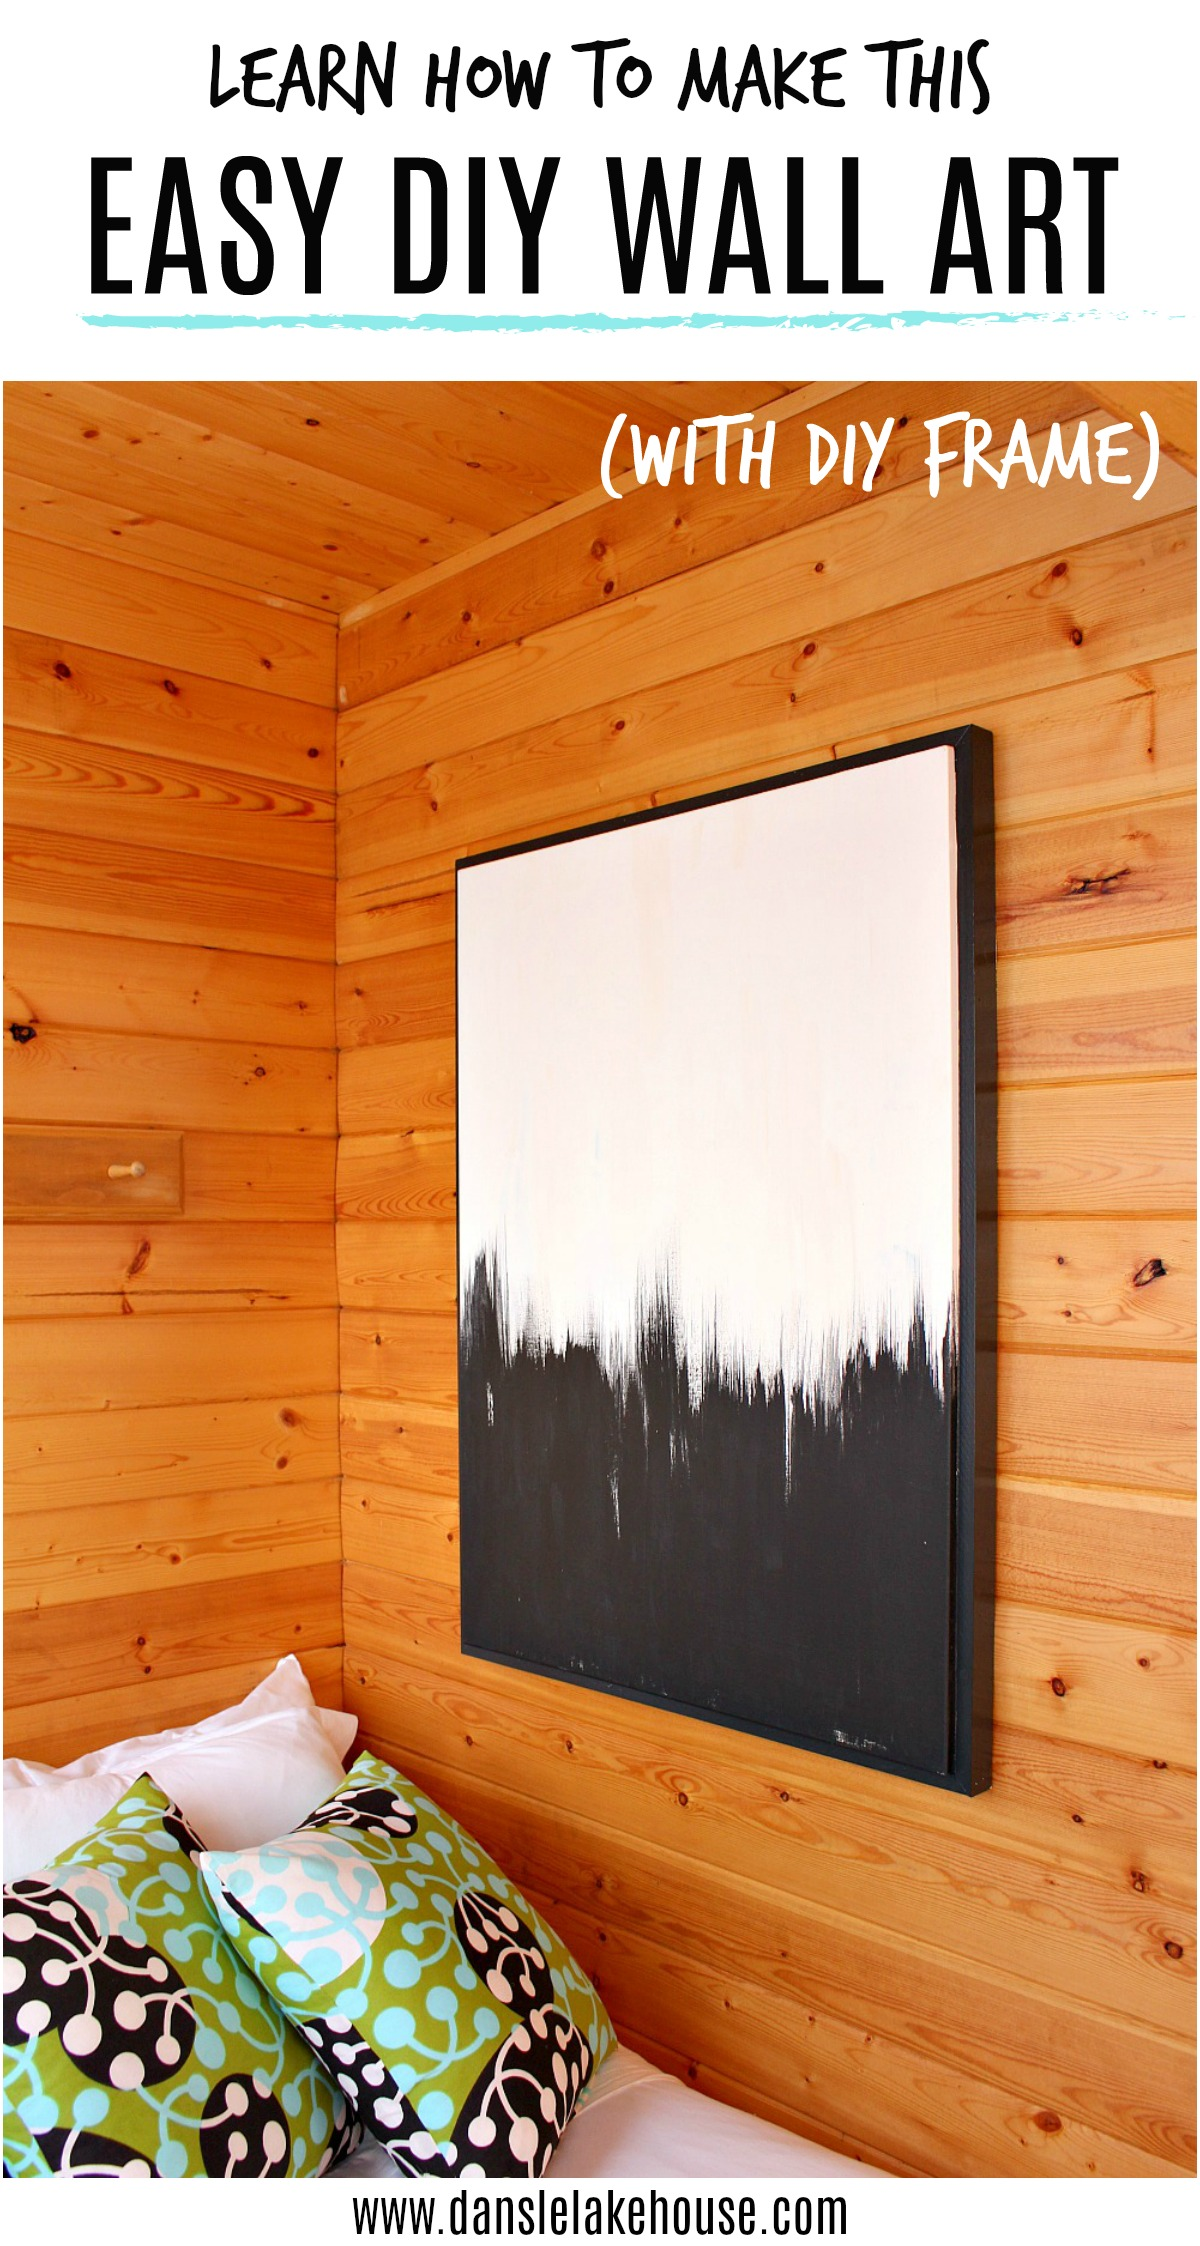 learn how to make this EASY DIY WALL ART